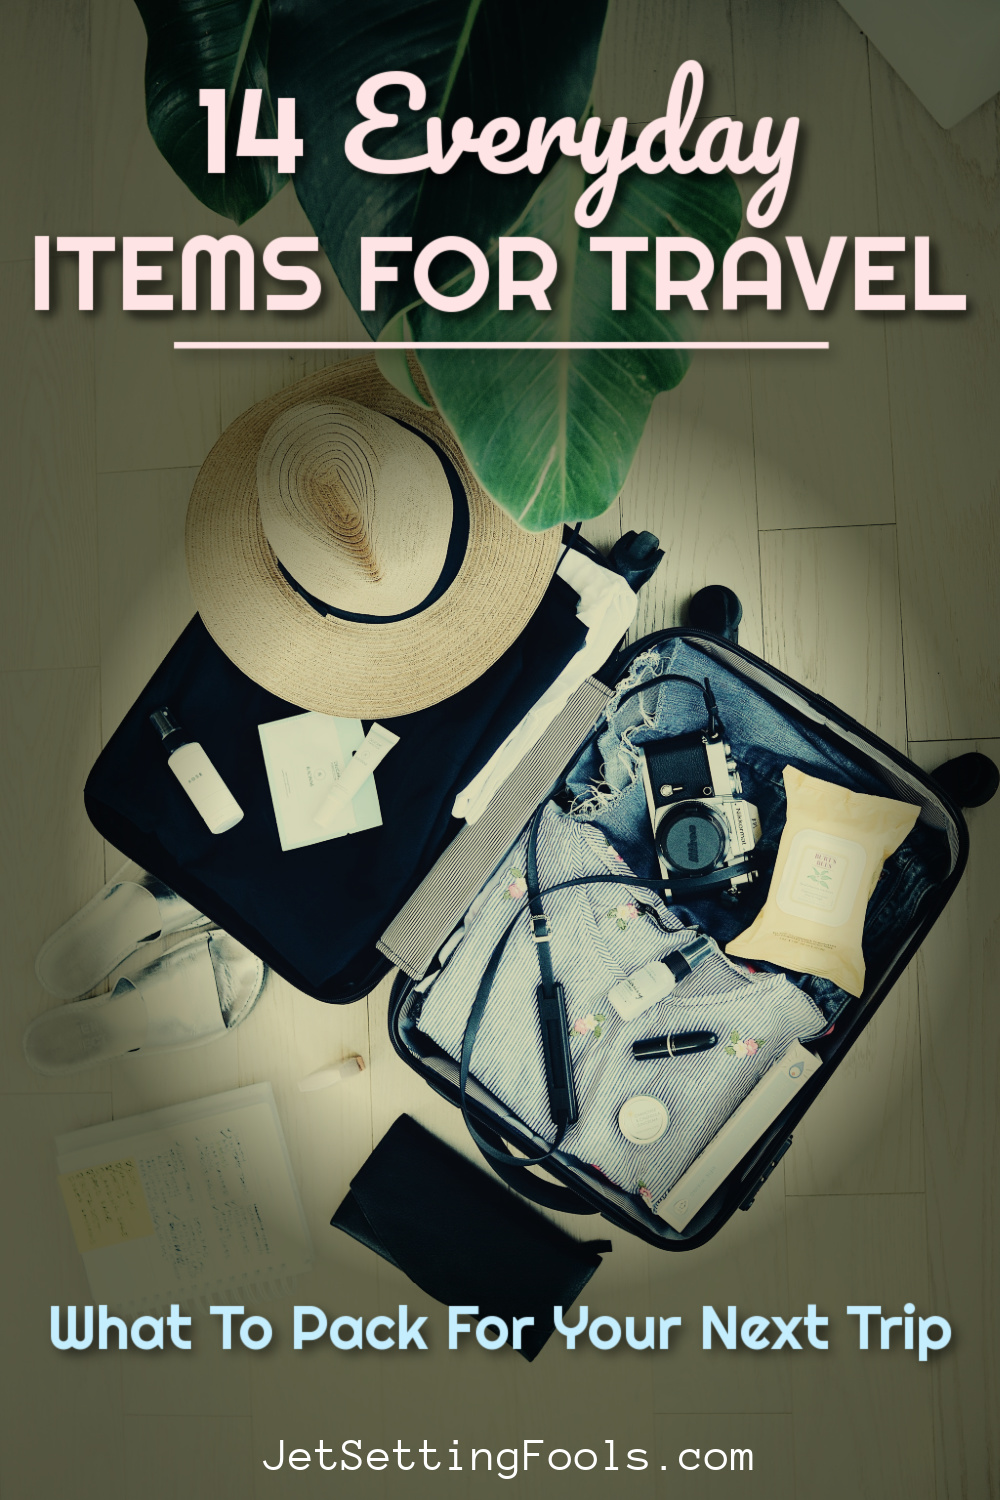 Things To Pack for a Trip by JetSettingFools.com